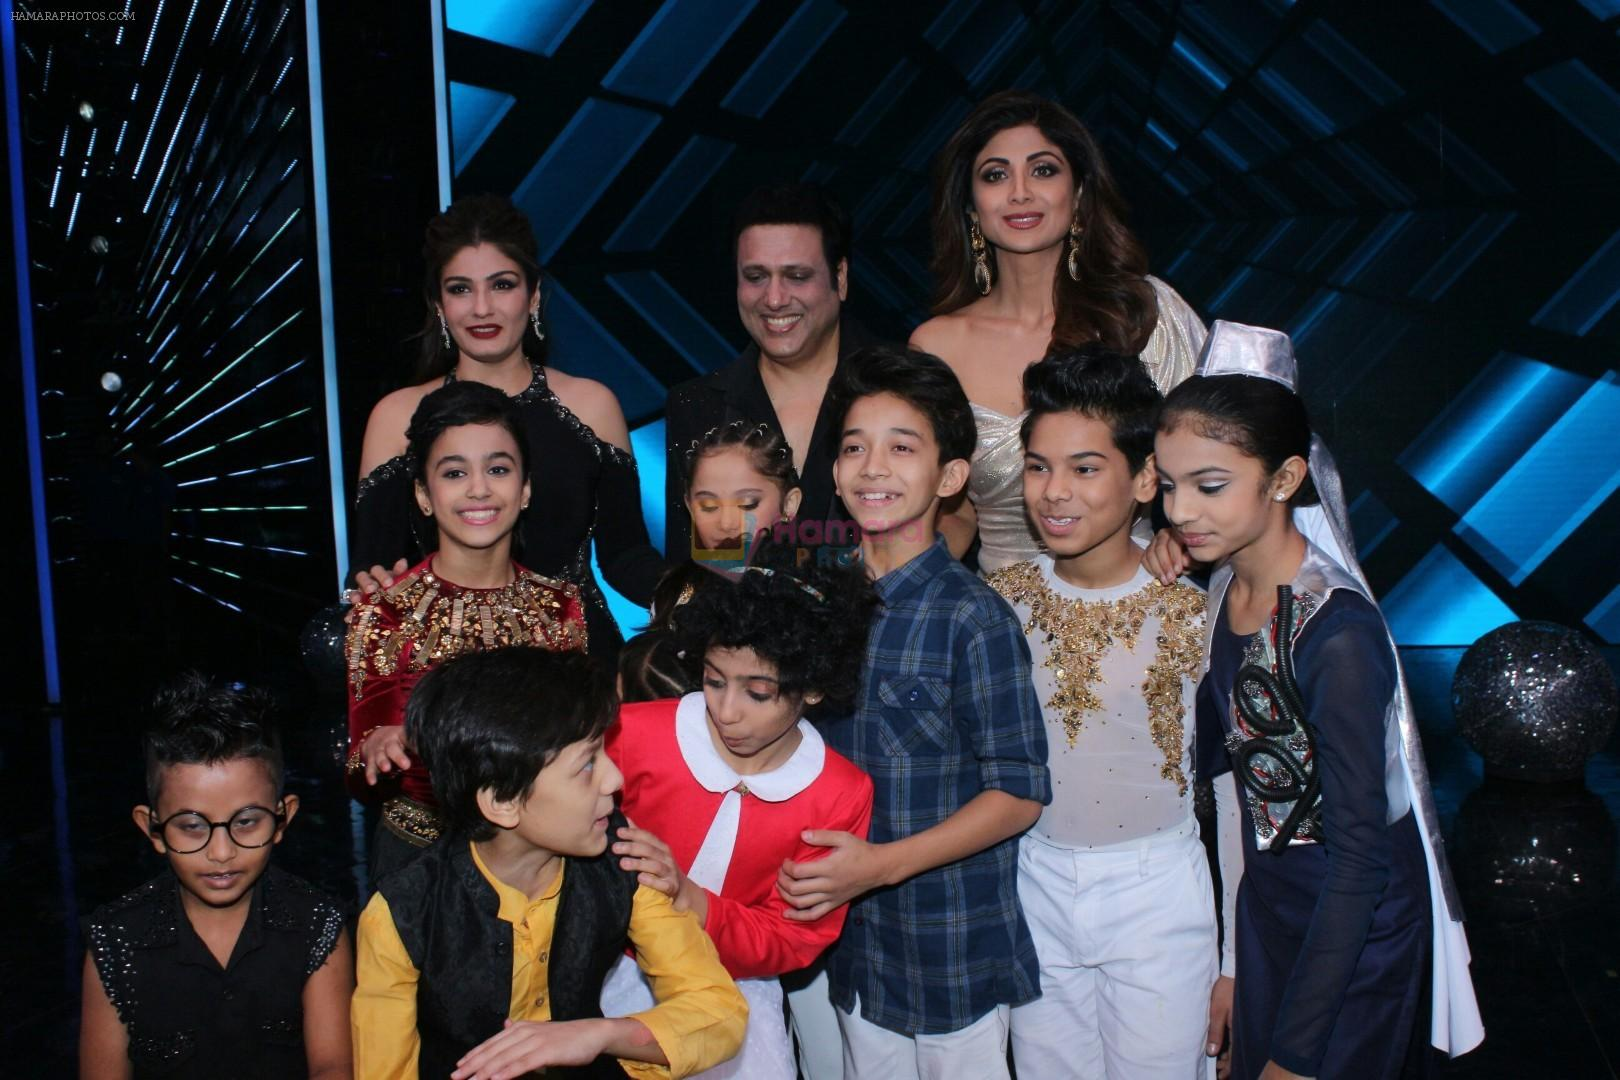 Govinda raveena tandon shilpa shetty on the sets of super dancer govinda raveena tandon shilpa shetty on the sets of super dancer chapter 2 on 4th dec 2017 thecheapjerseys Images